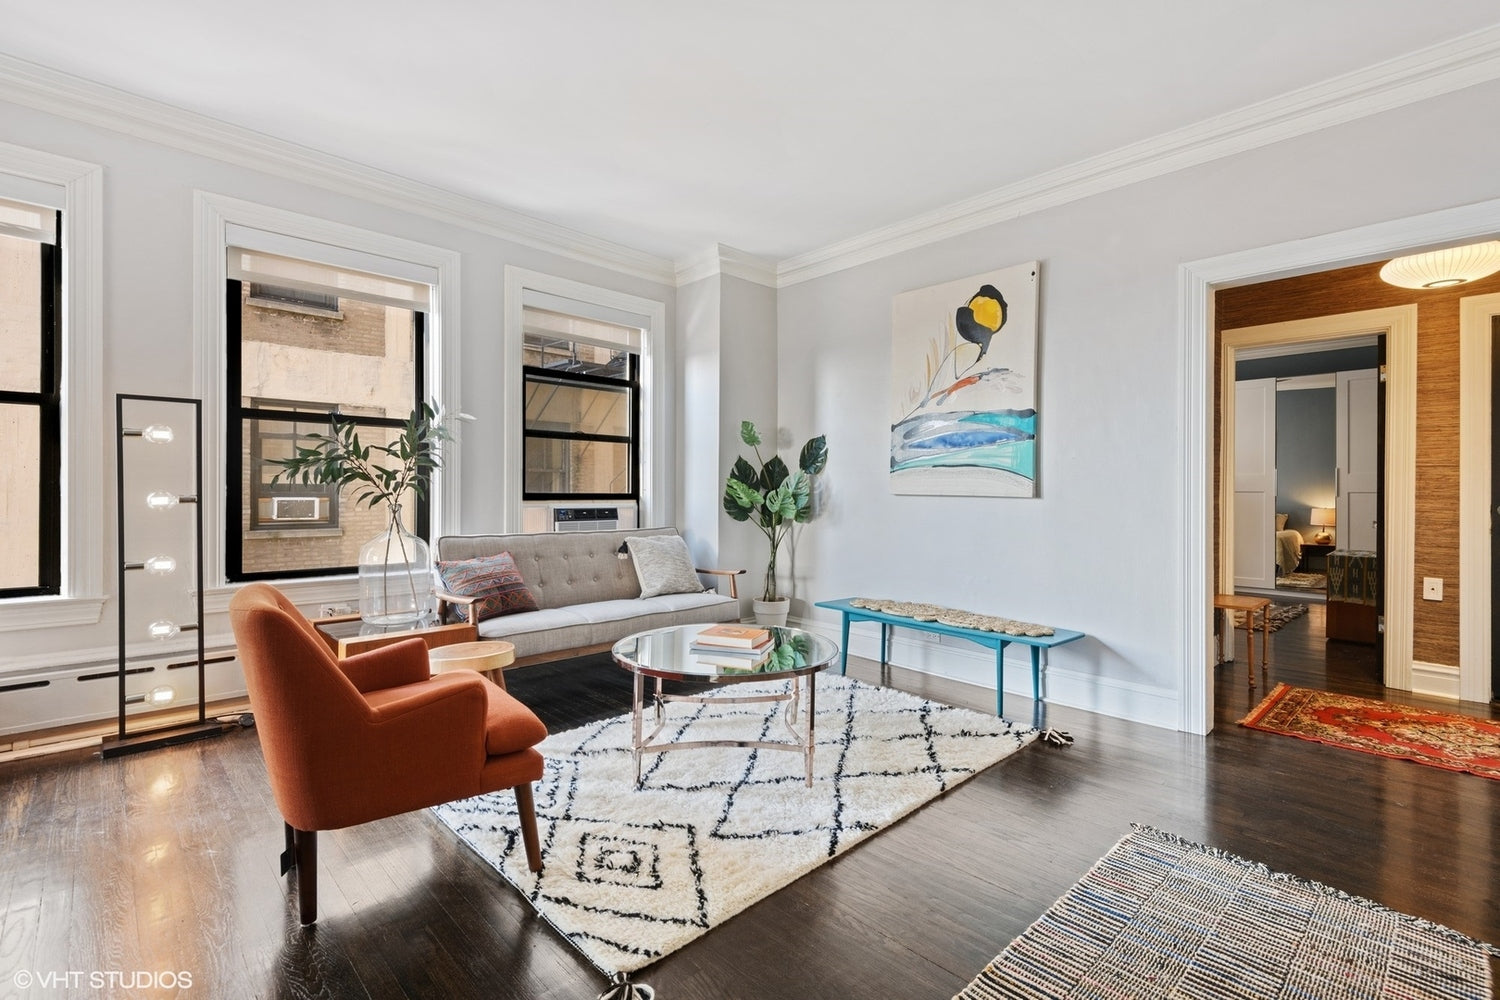 Eskell Staging Companies Chicago provides home staging for apartments for sale, Chicago lakefront properties and more.